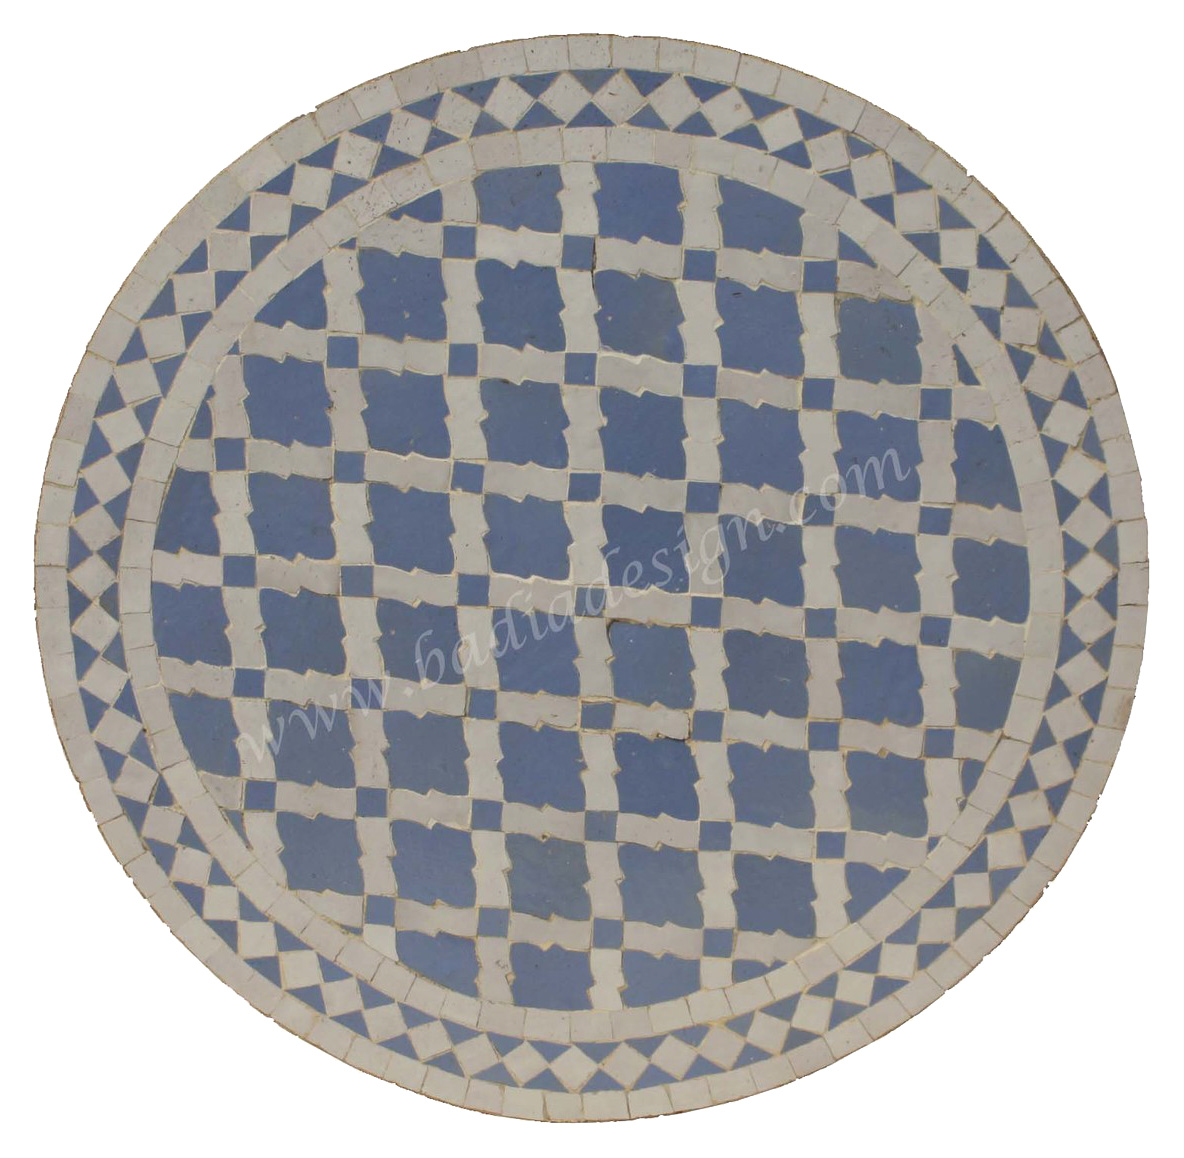 round-moroccan-tile-table-mtr210-4-09182.1490730757.1280.1280.jpg